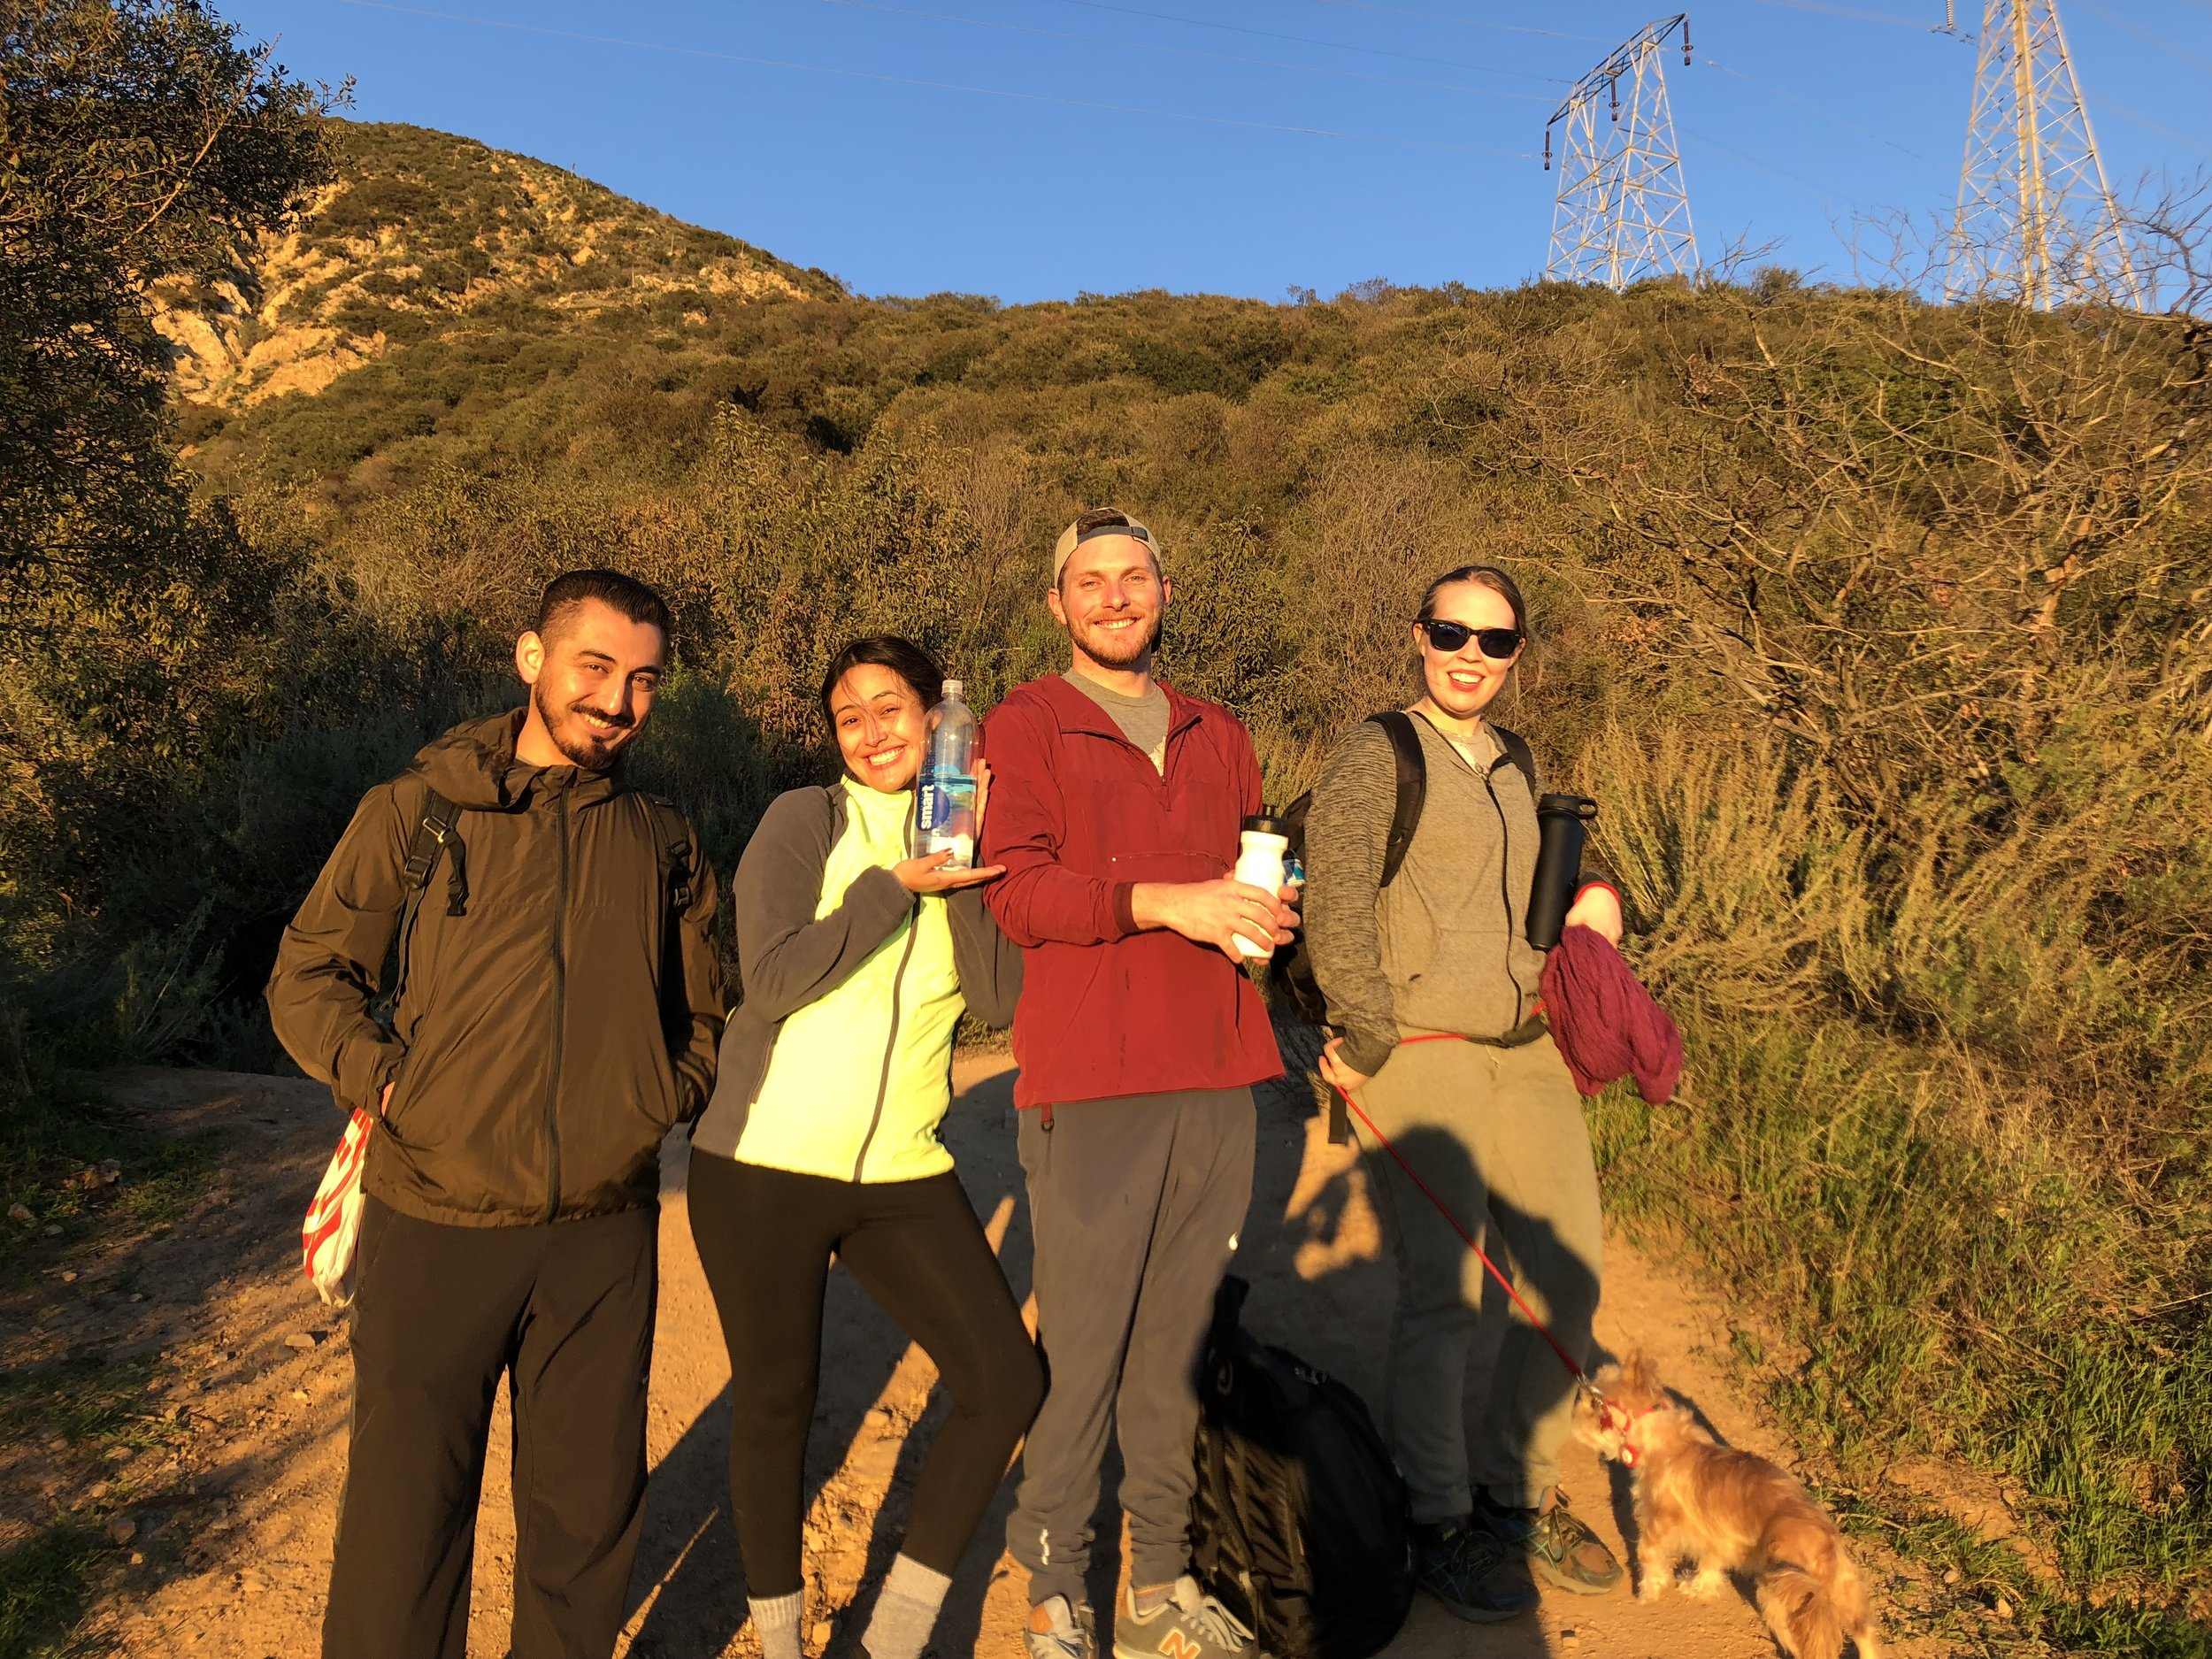 hiking with friends from work a few months back. i've developed a fondness for my co workers and workplace that i haven't experienced anywhere else. i'm not really close with anyone, and i find myself getting quite emotionally worked up at work… lots of rough nights, disorganization, and frustration. but even through the shit storm, i find myself feeling grateful for the folks i've met through this quirky restaurant job. this was a fantastic hike and a fantastic day.